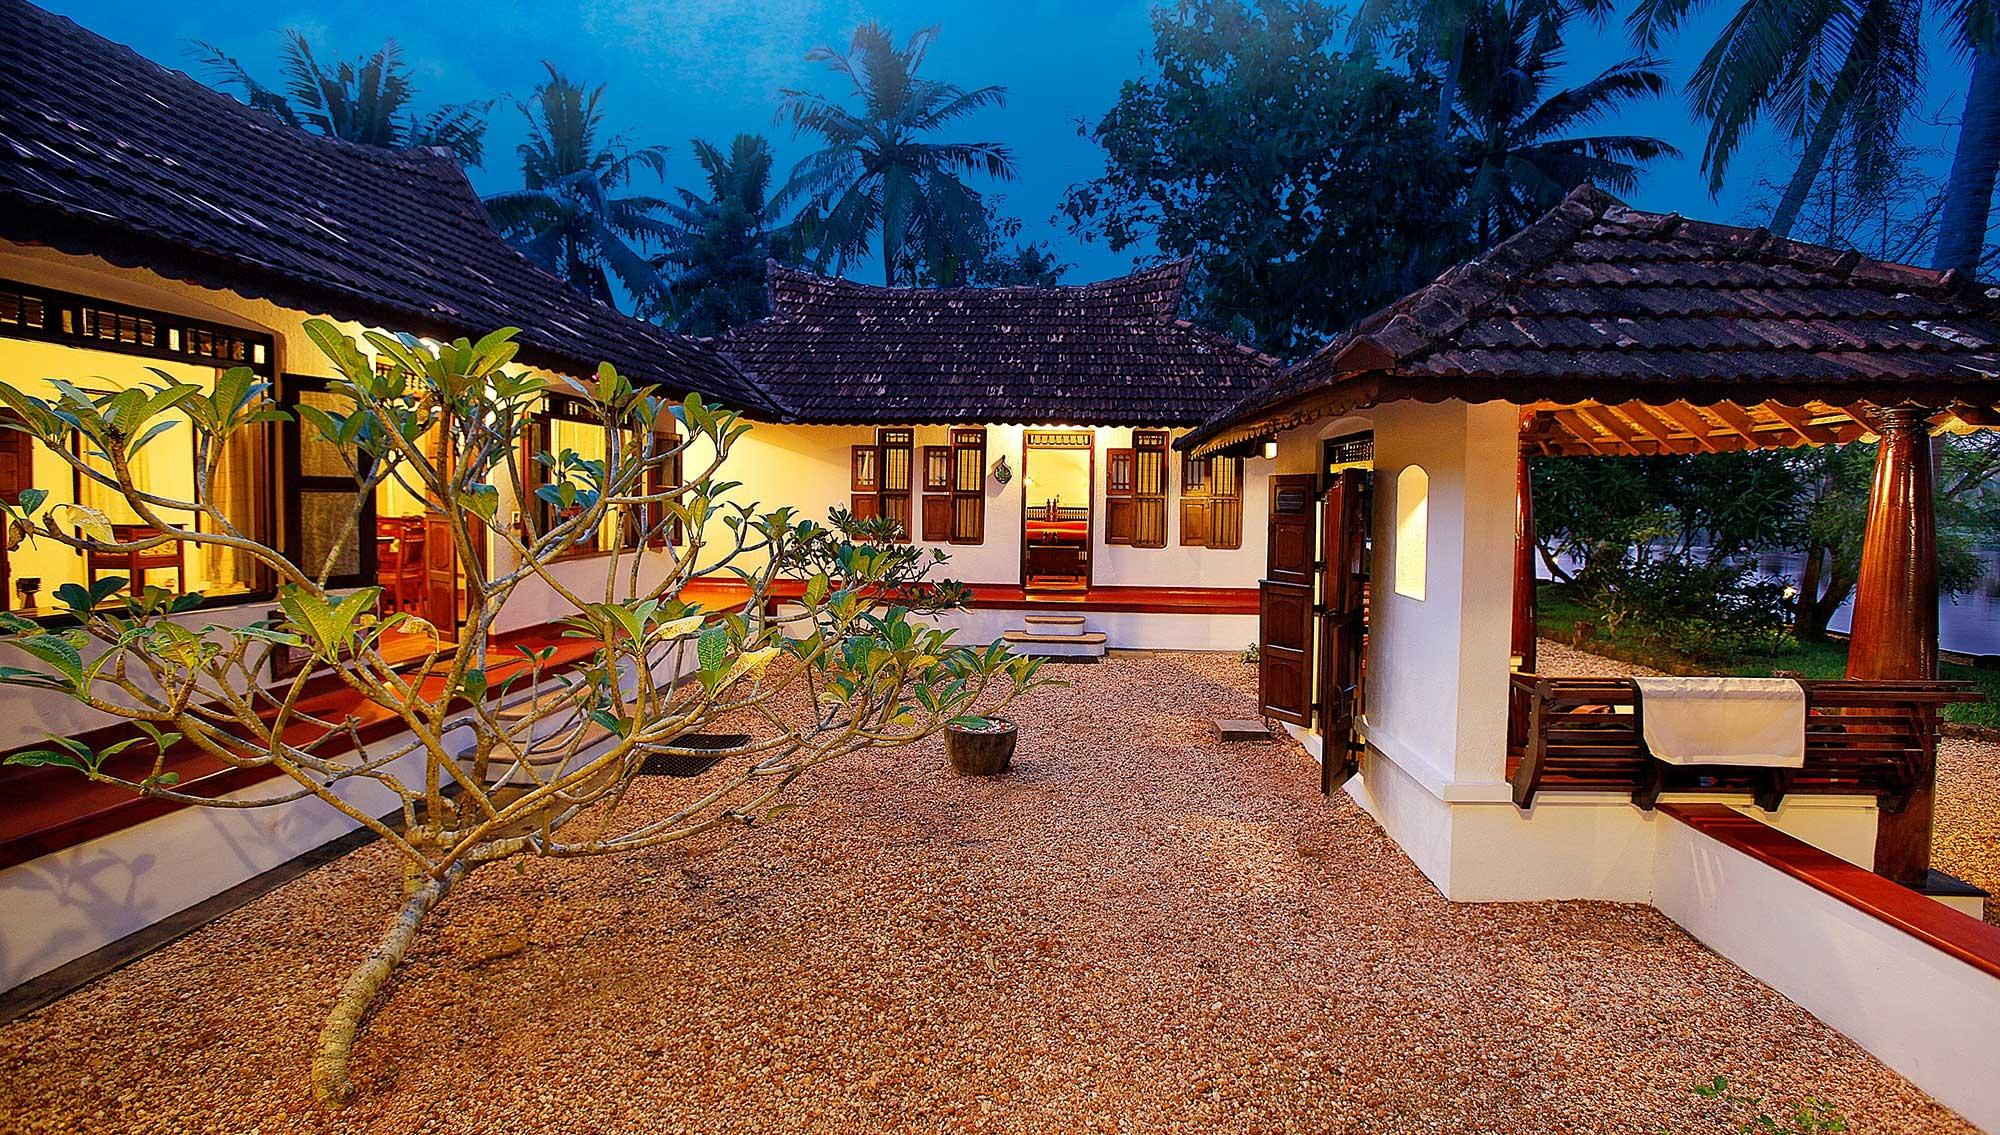 Beautiful Farmhouse In Kerala Ditch The Conventional Hotels For These Gorgeous Homestays